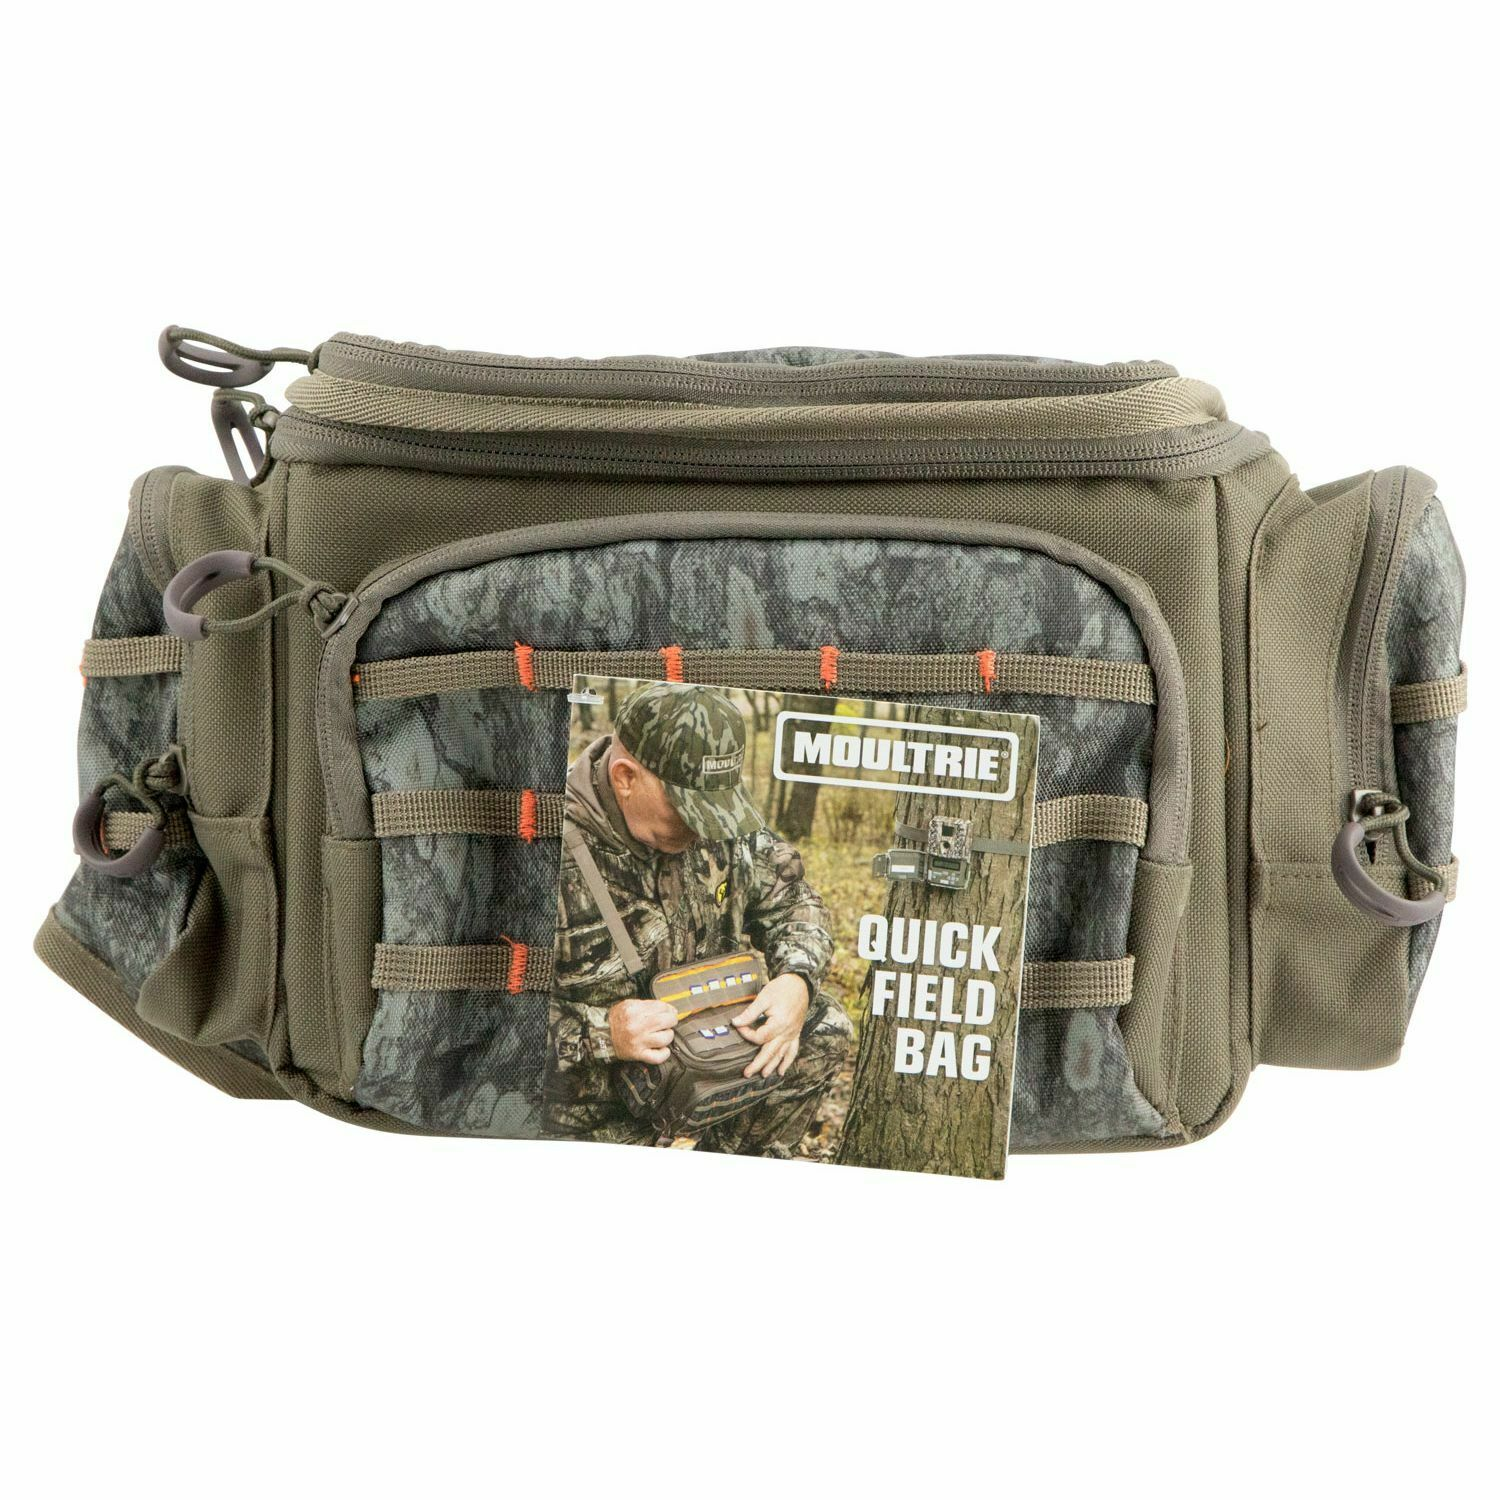 New Moultrie Small Game Trail Camera Bag MCA-13293